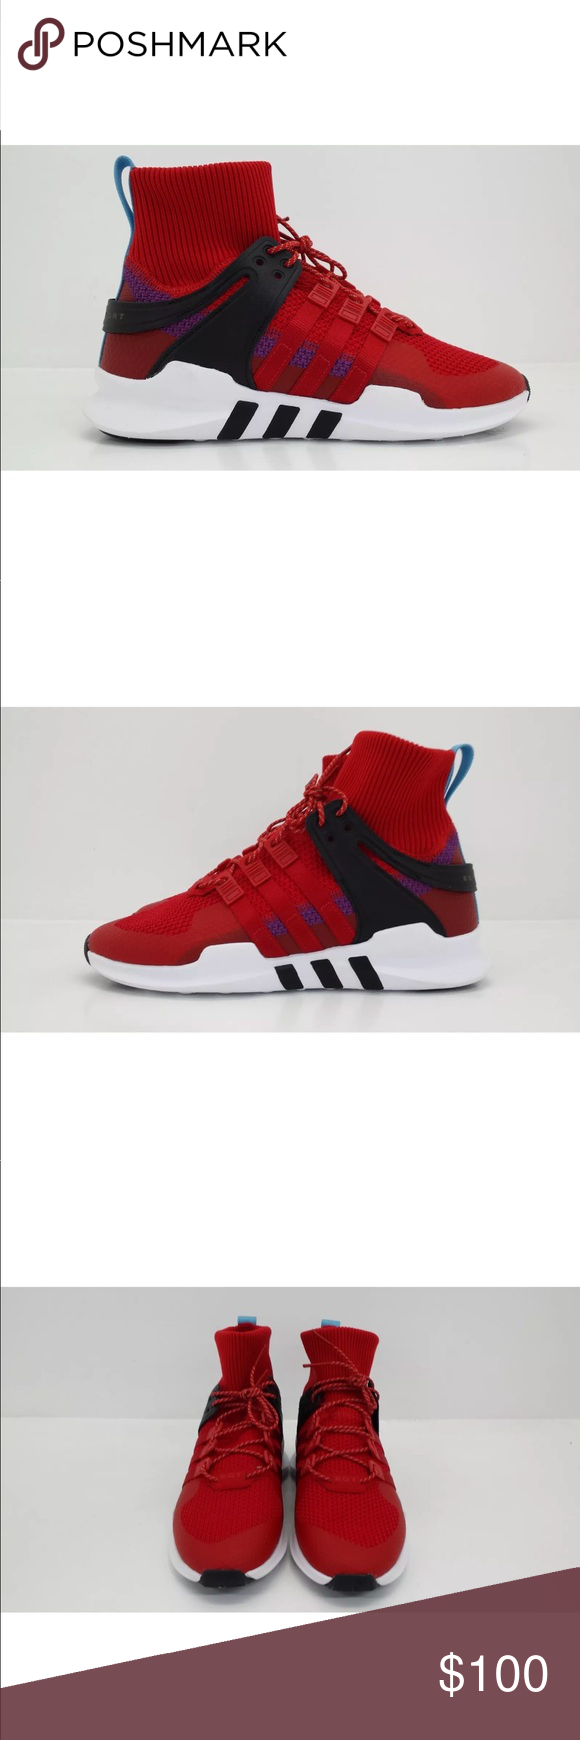 info for 5b486 24002 Adidas EQT Support ADV Winter Running Shoes BZ0640 Adidas EQT Support ADV  Winter BZ0640 Condition